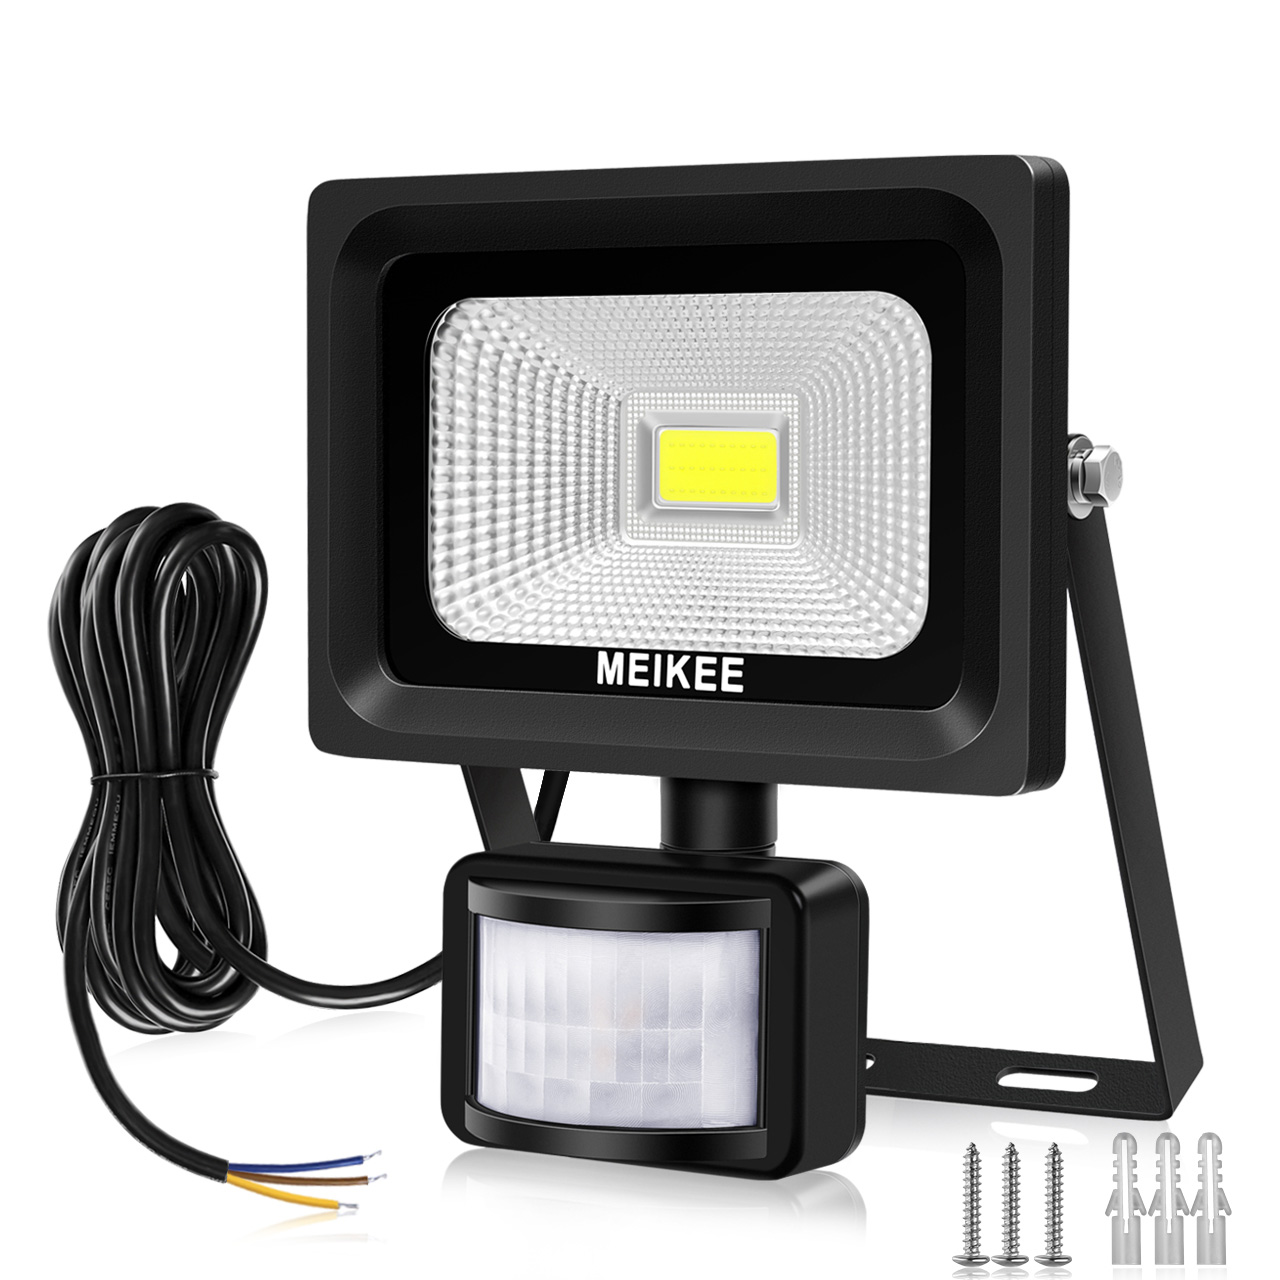 MEIKEE Security Lights with Motion Sensor 10W